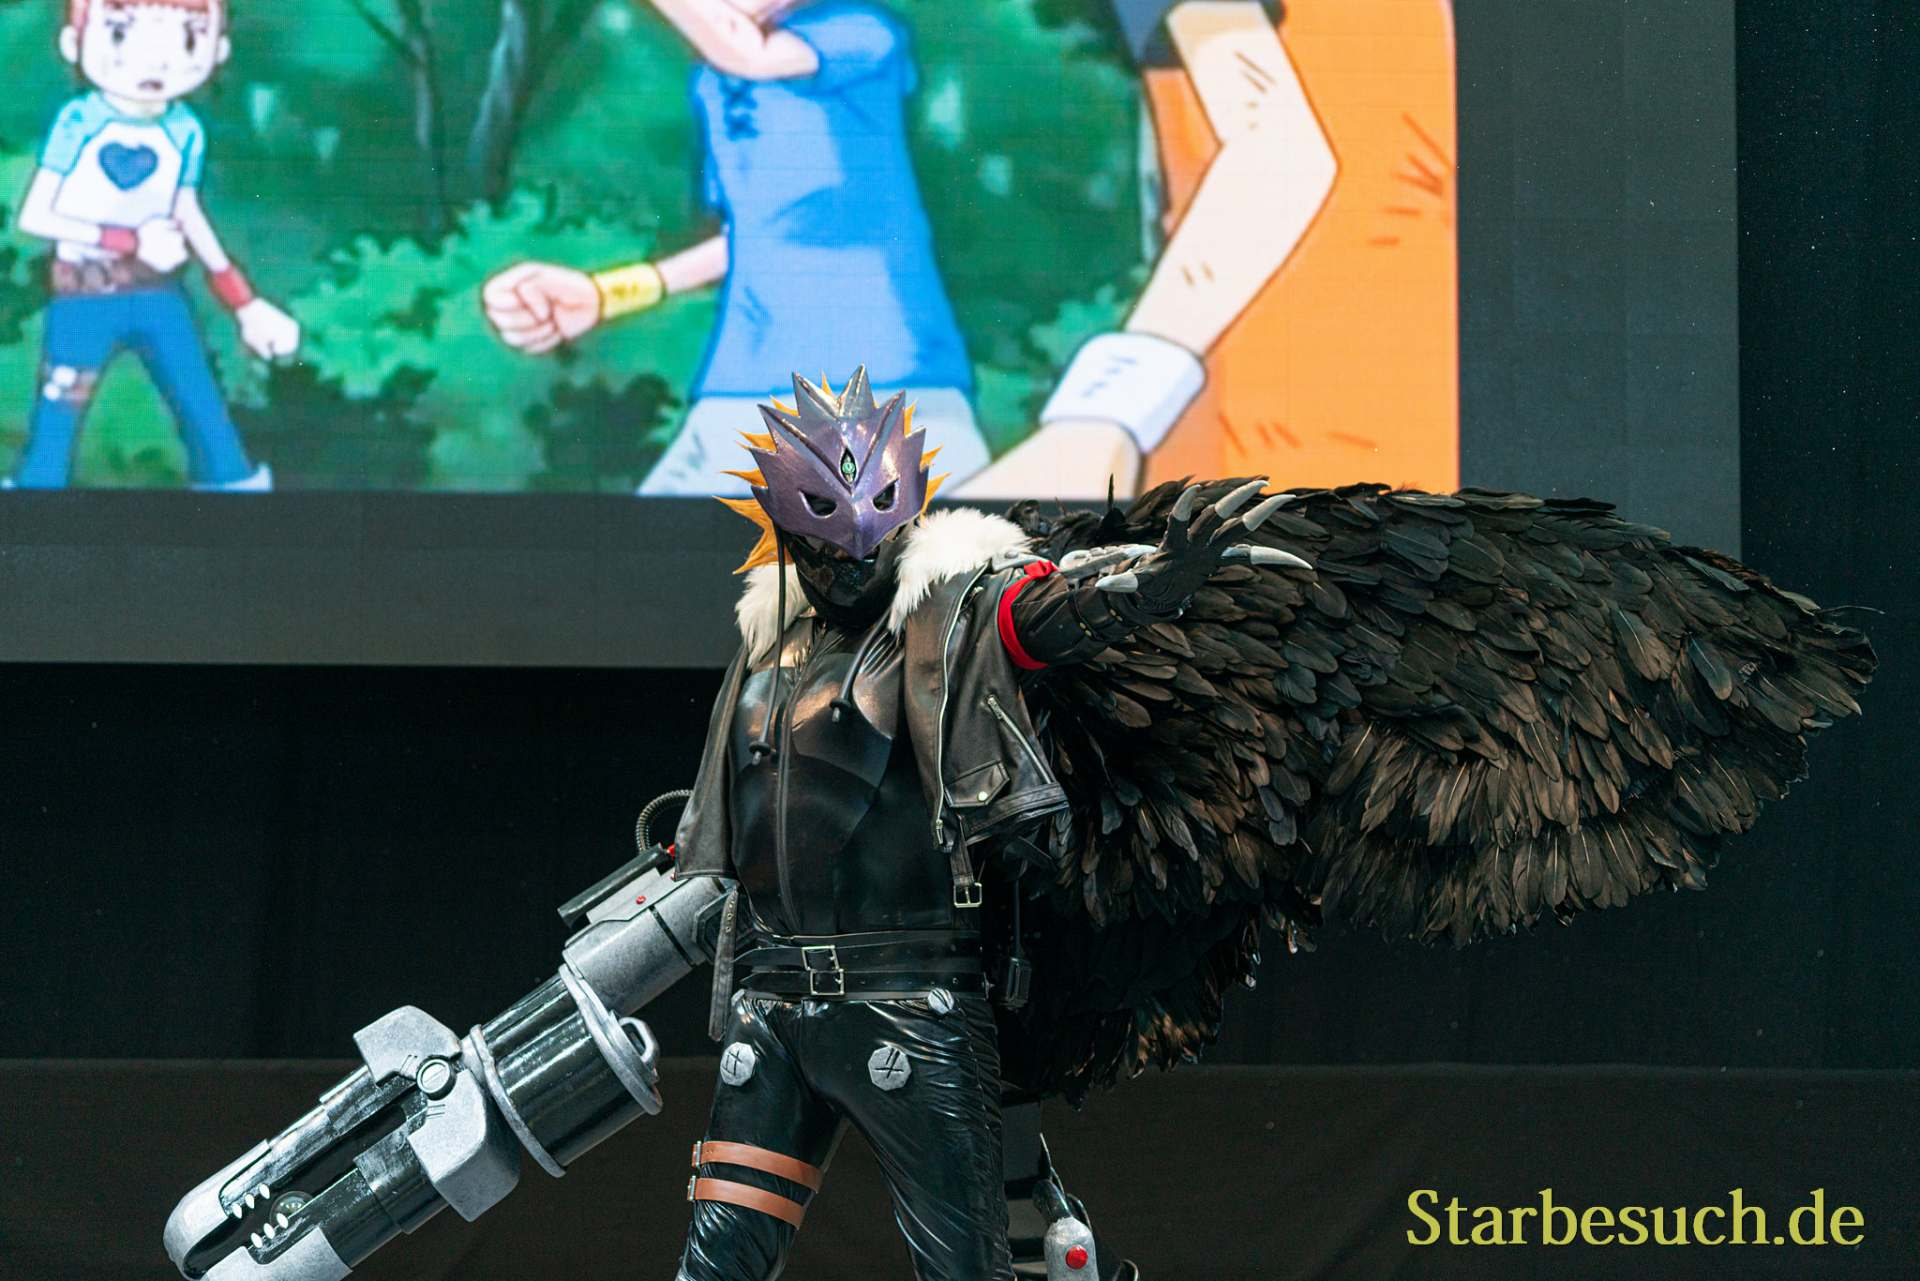 Cosplay Contest #15: PNCosplay as Beelzemon Blastmode from Digimon Tamers